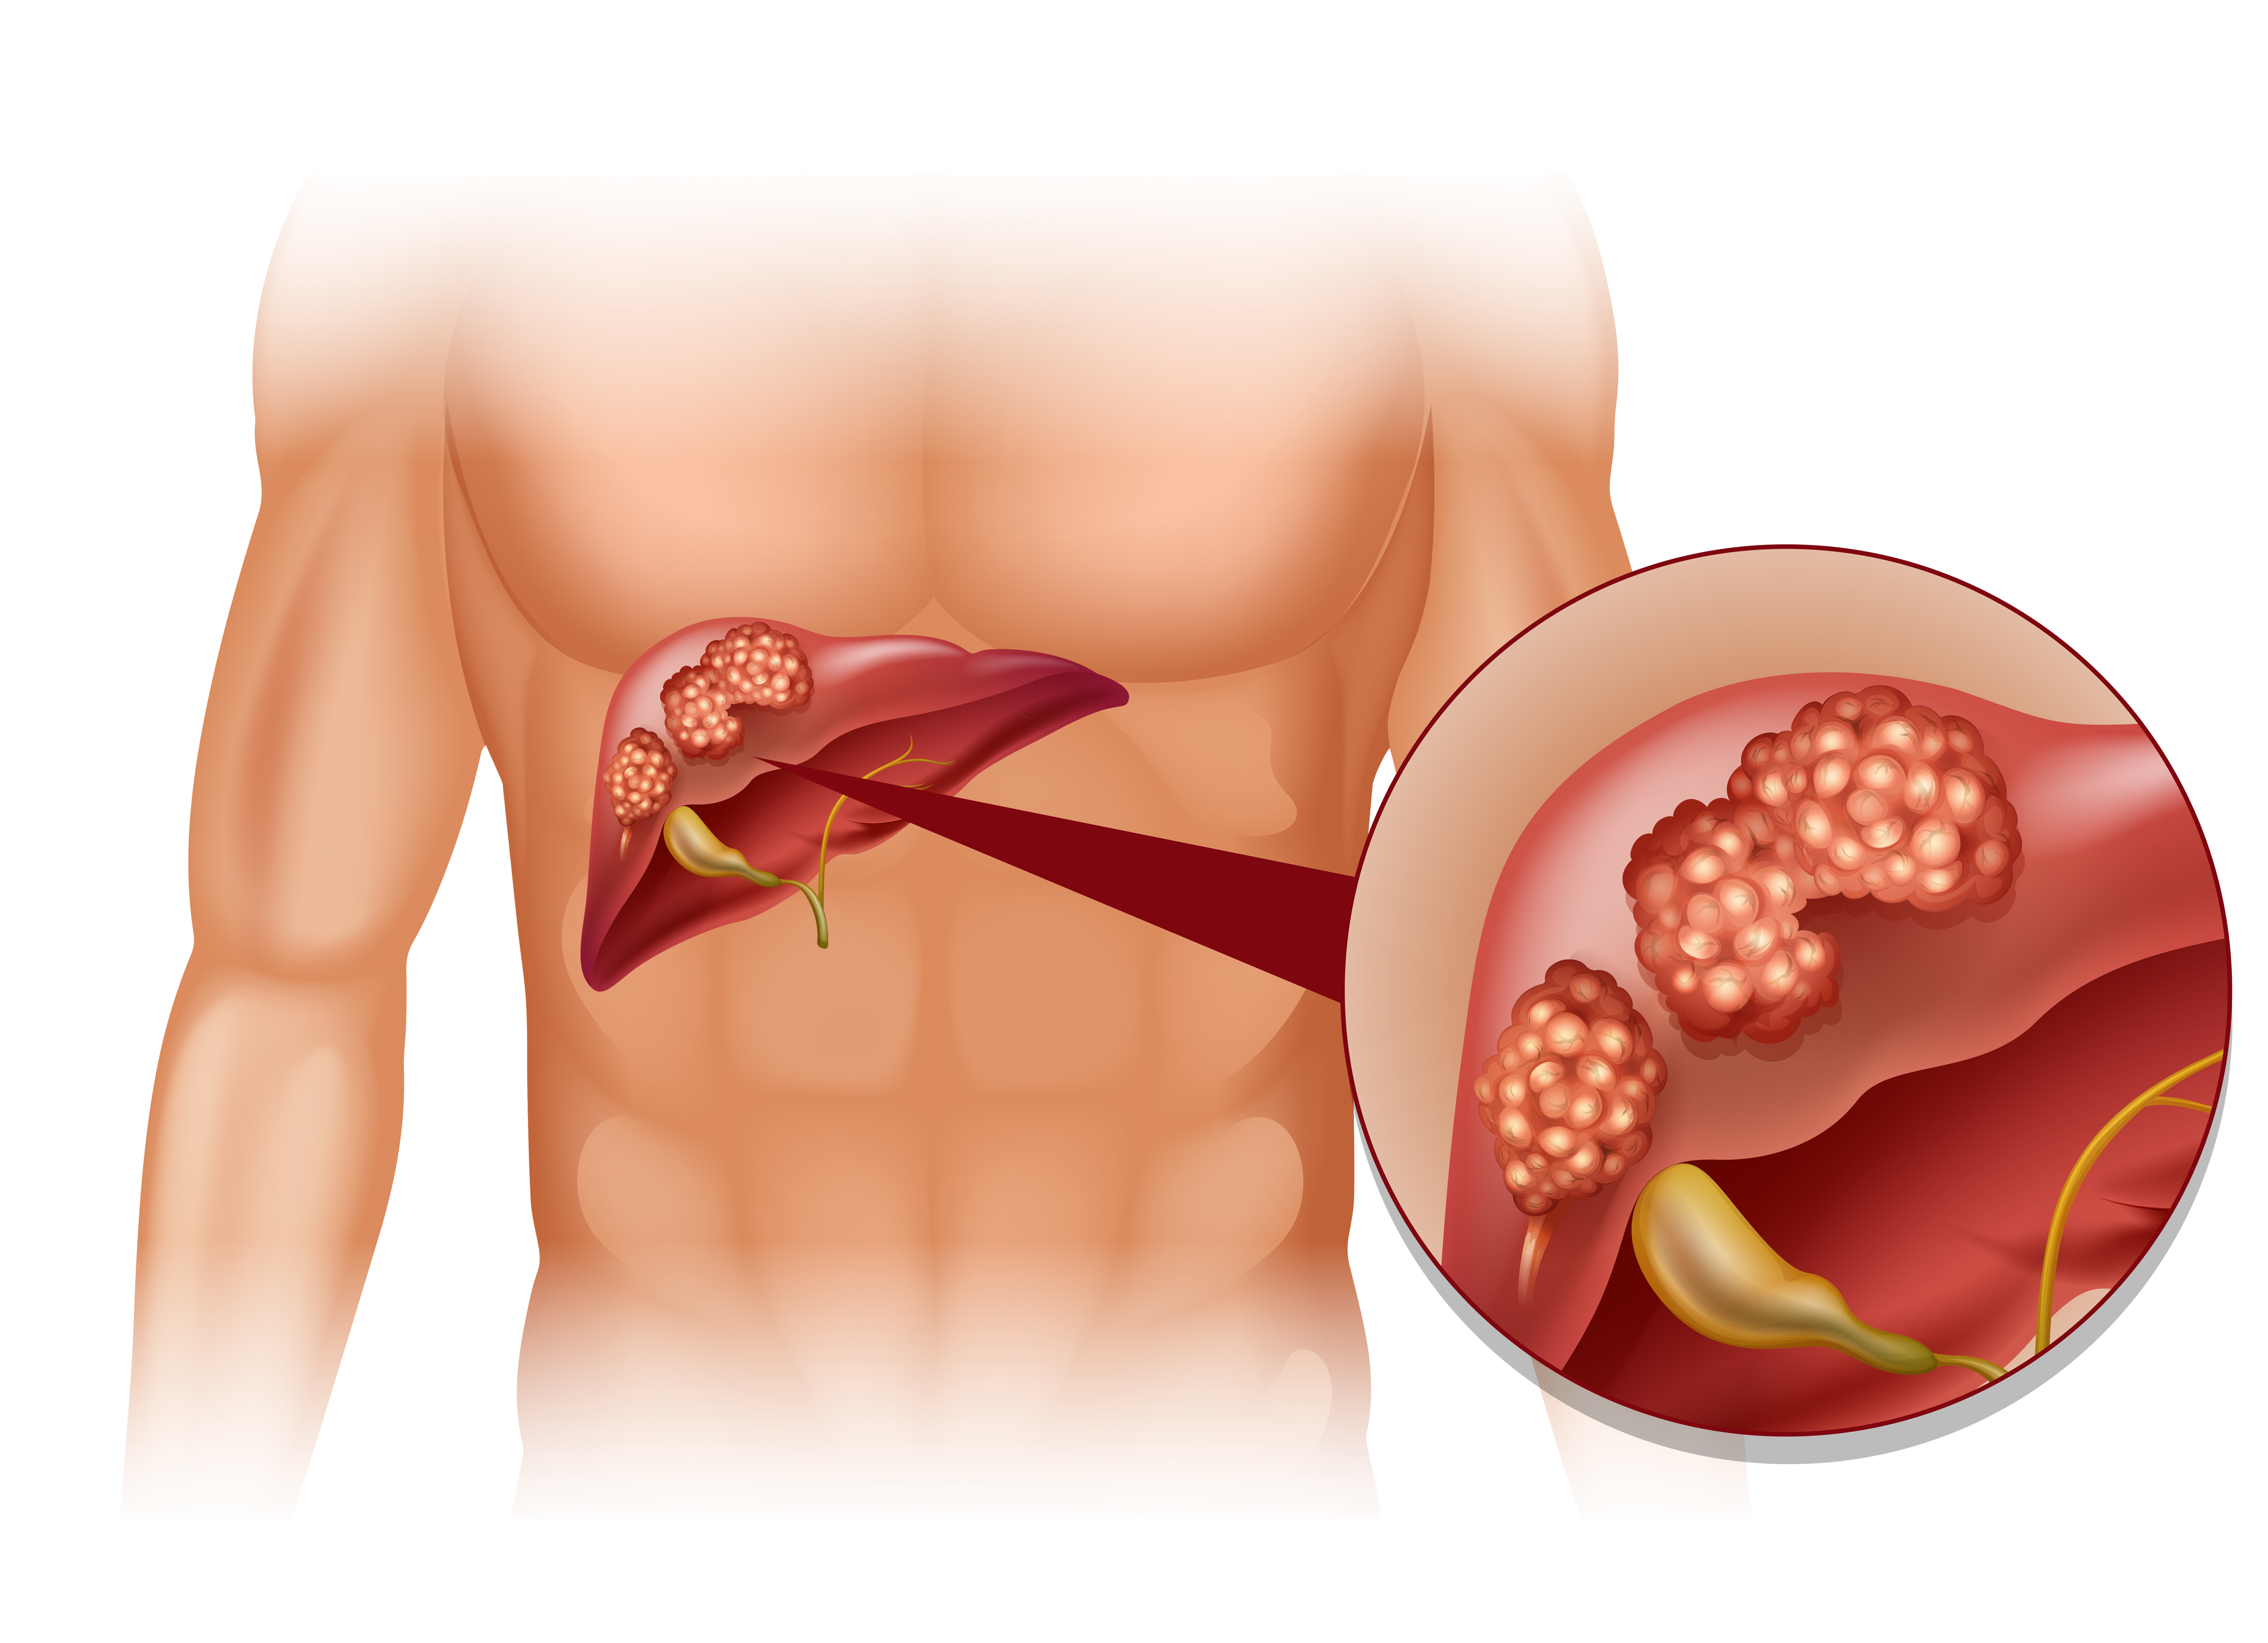 Studyexplains why males are more prone to liver cancers